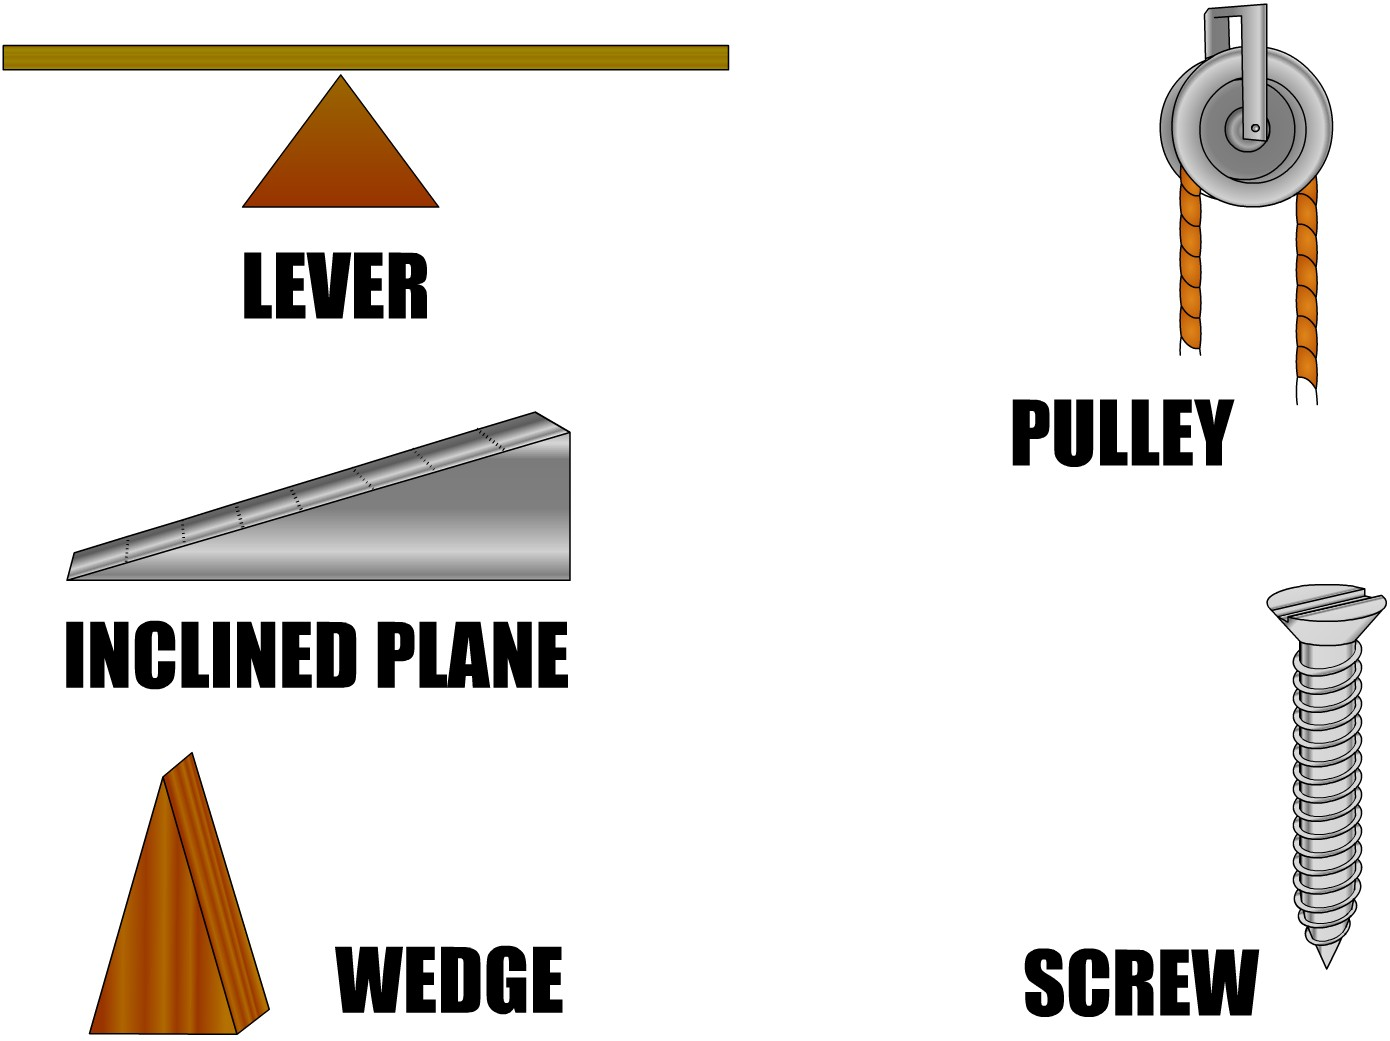 These are the simple machines that I read about.